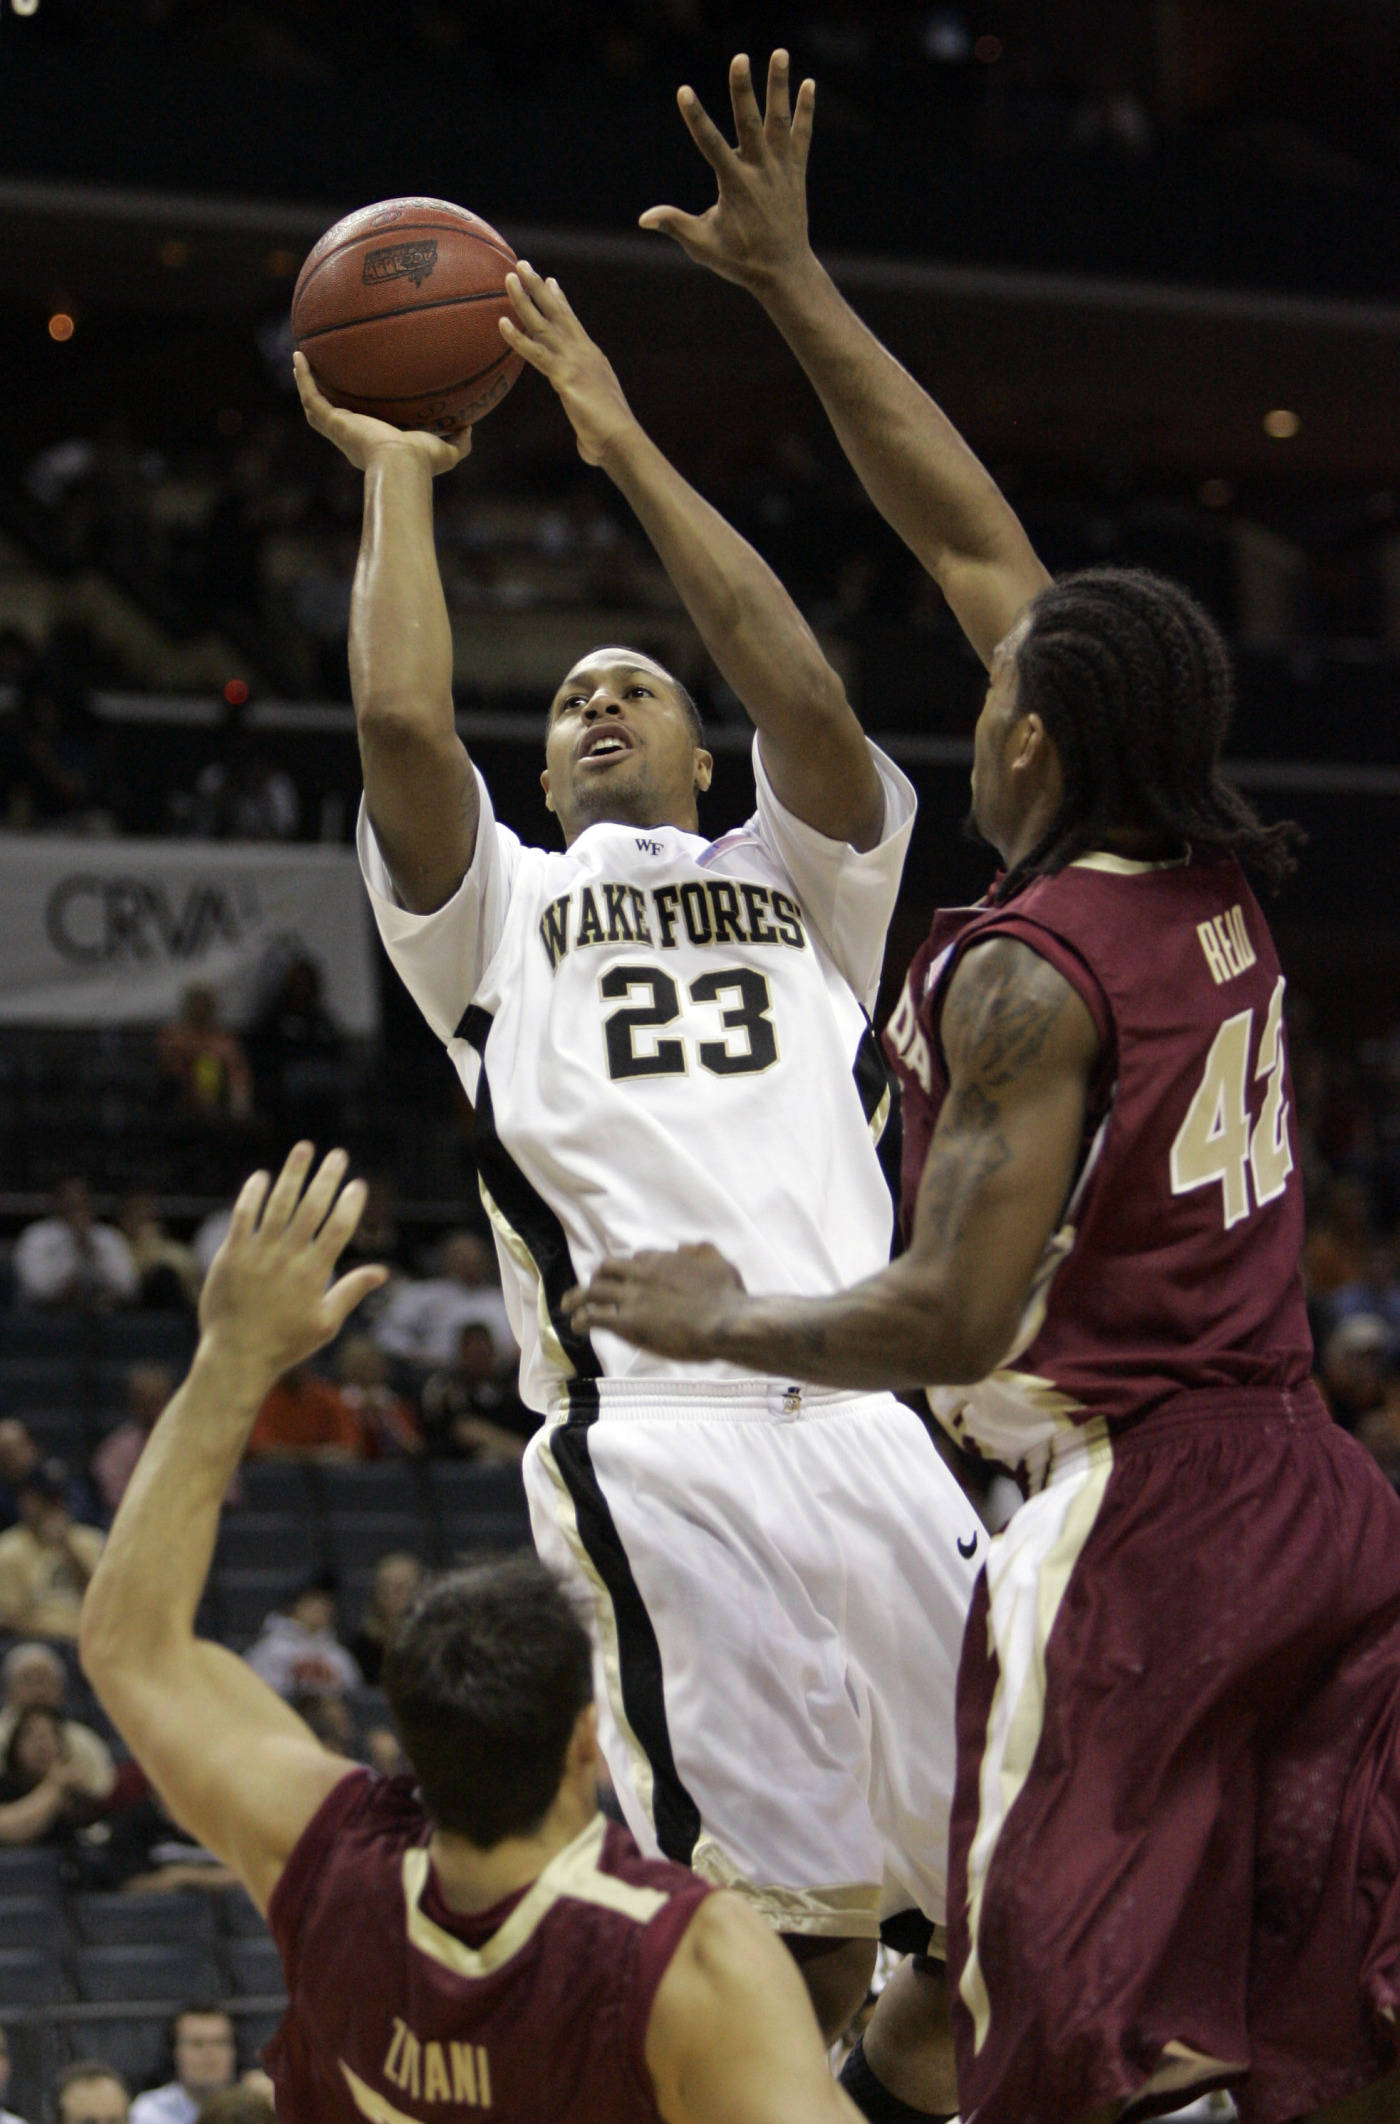 Wake Forest's James Johnson shoots over Matt Zitani, left, and Ryan Reid in the first half. (AP Photo/Gerry Broome)